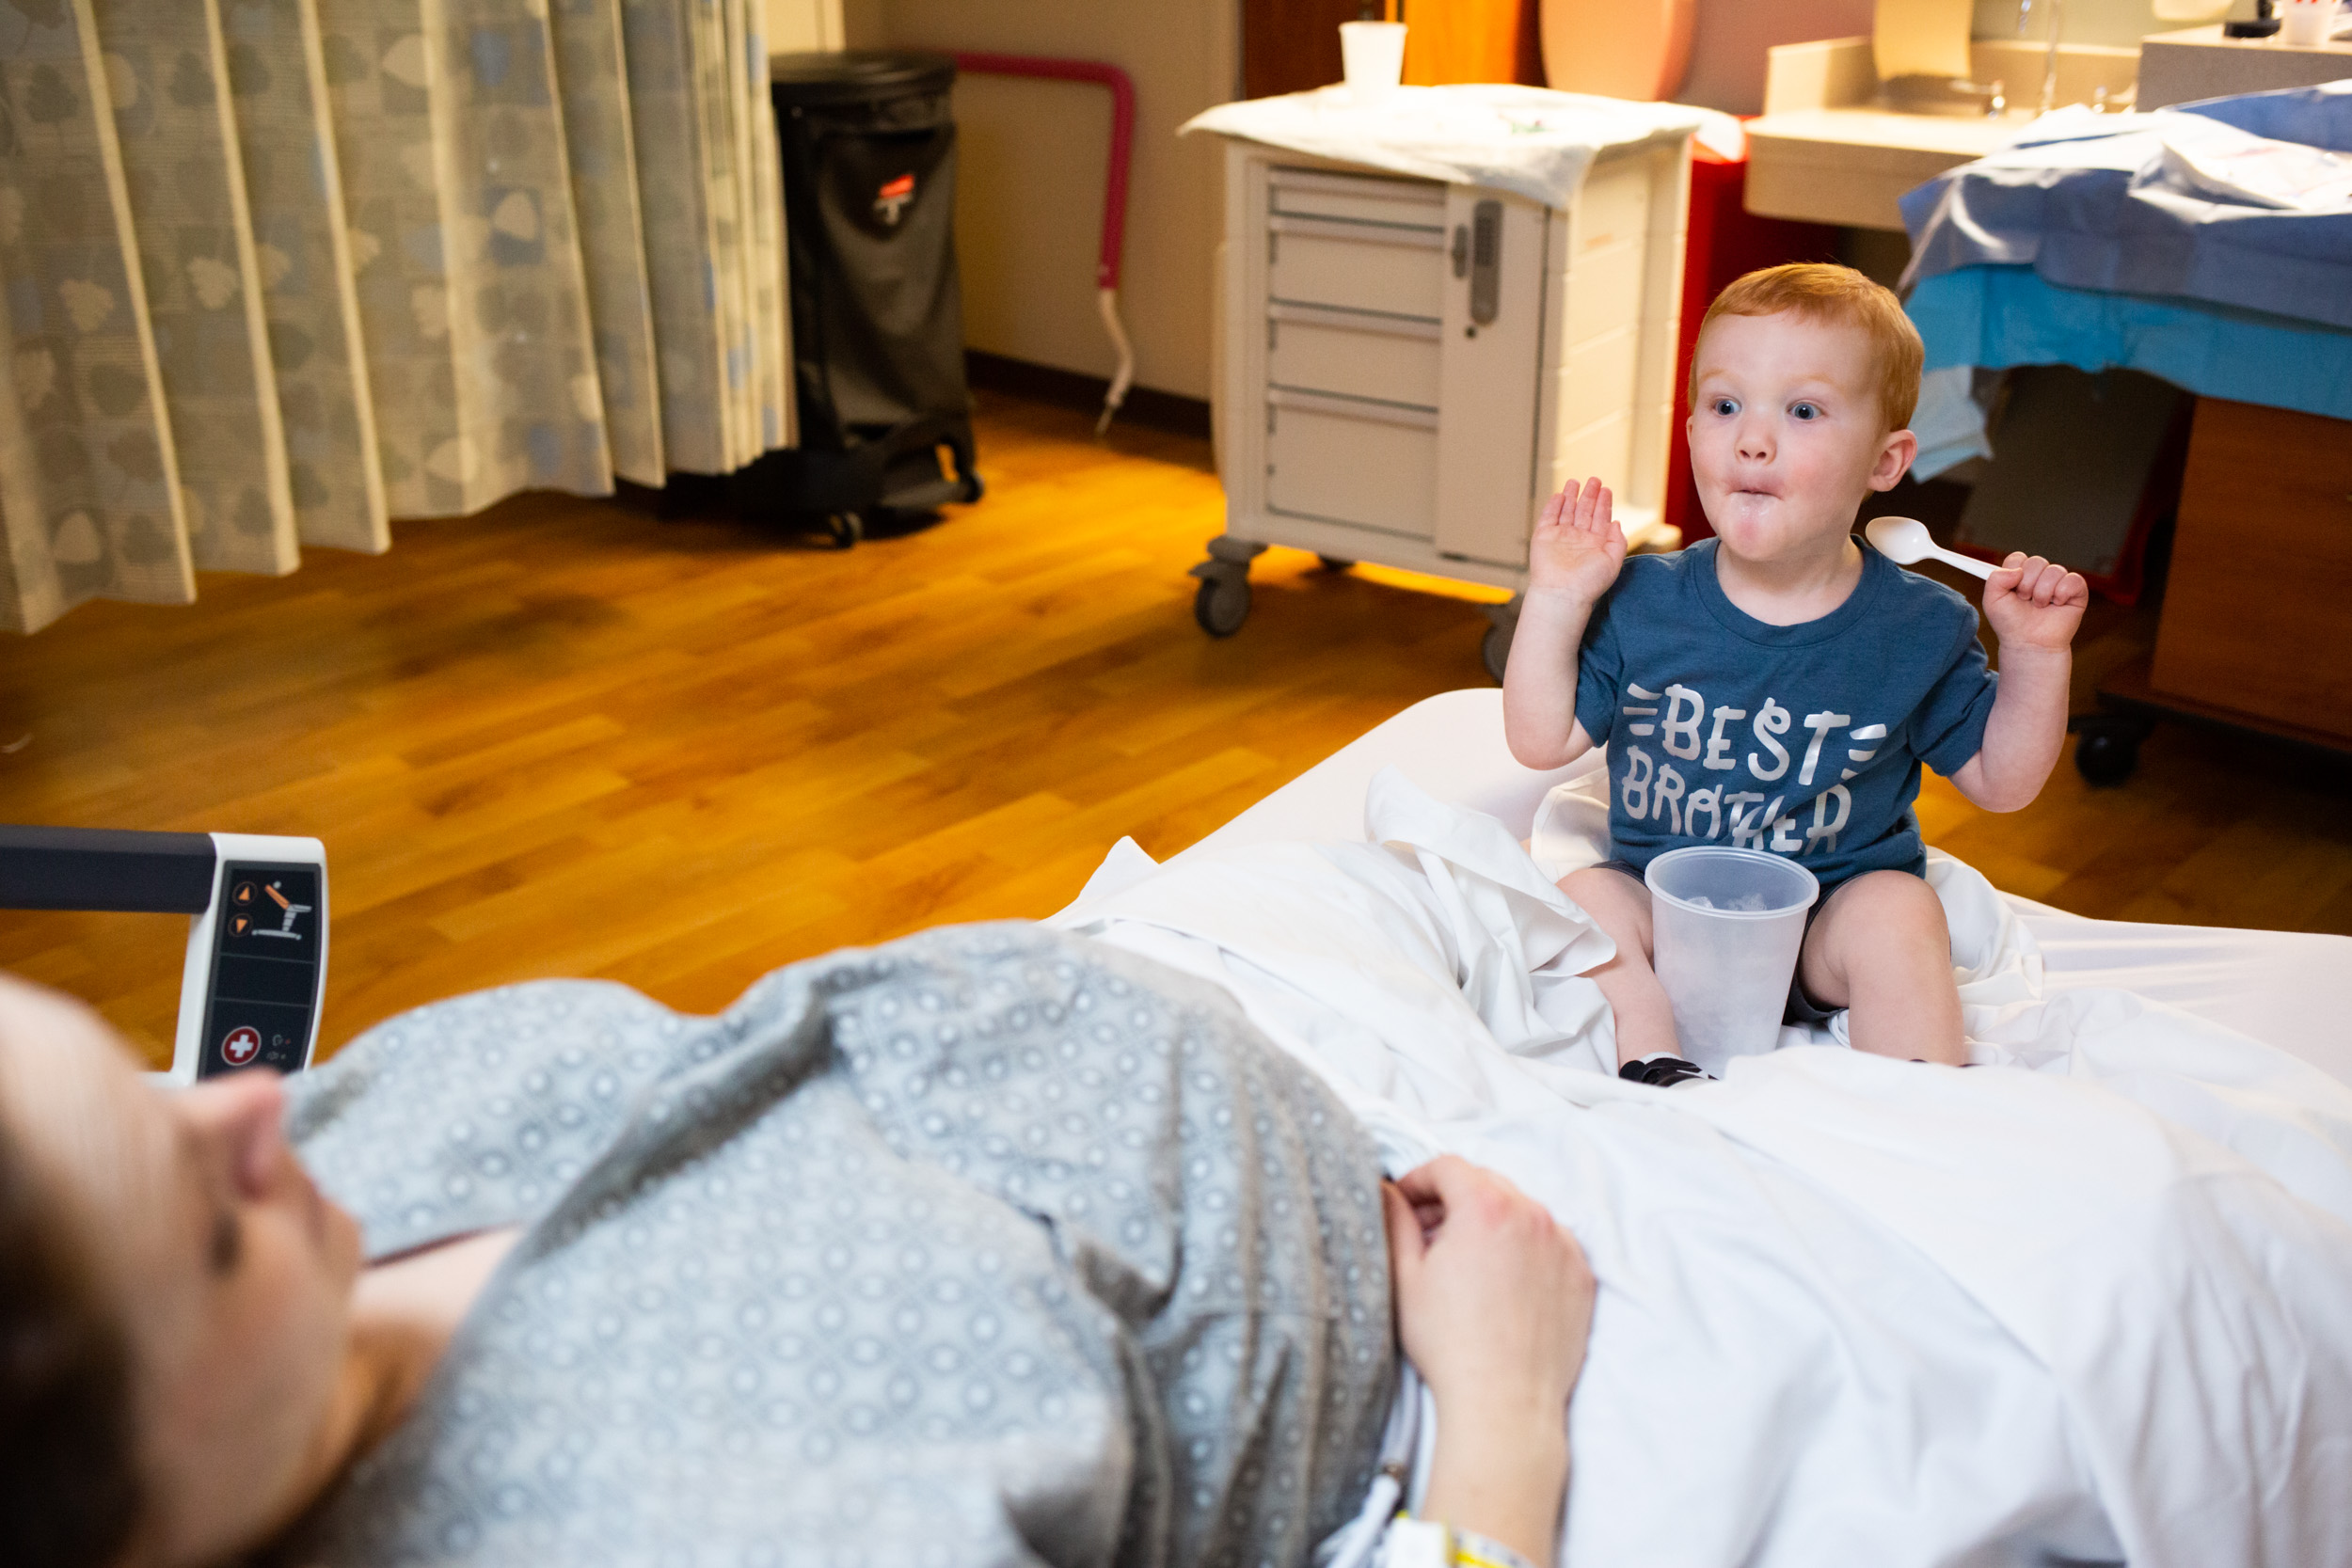 little boy making his mom laugh in hospital room during her labor